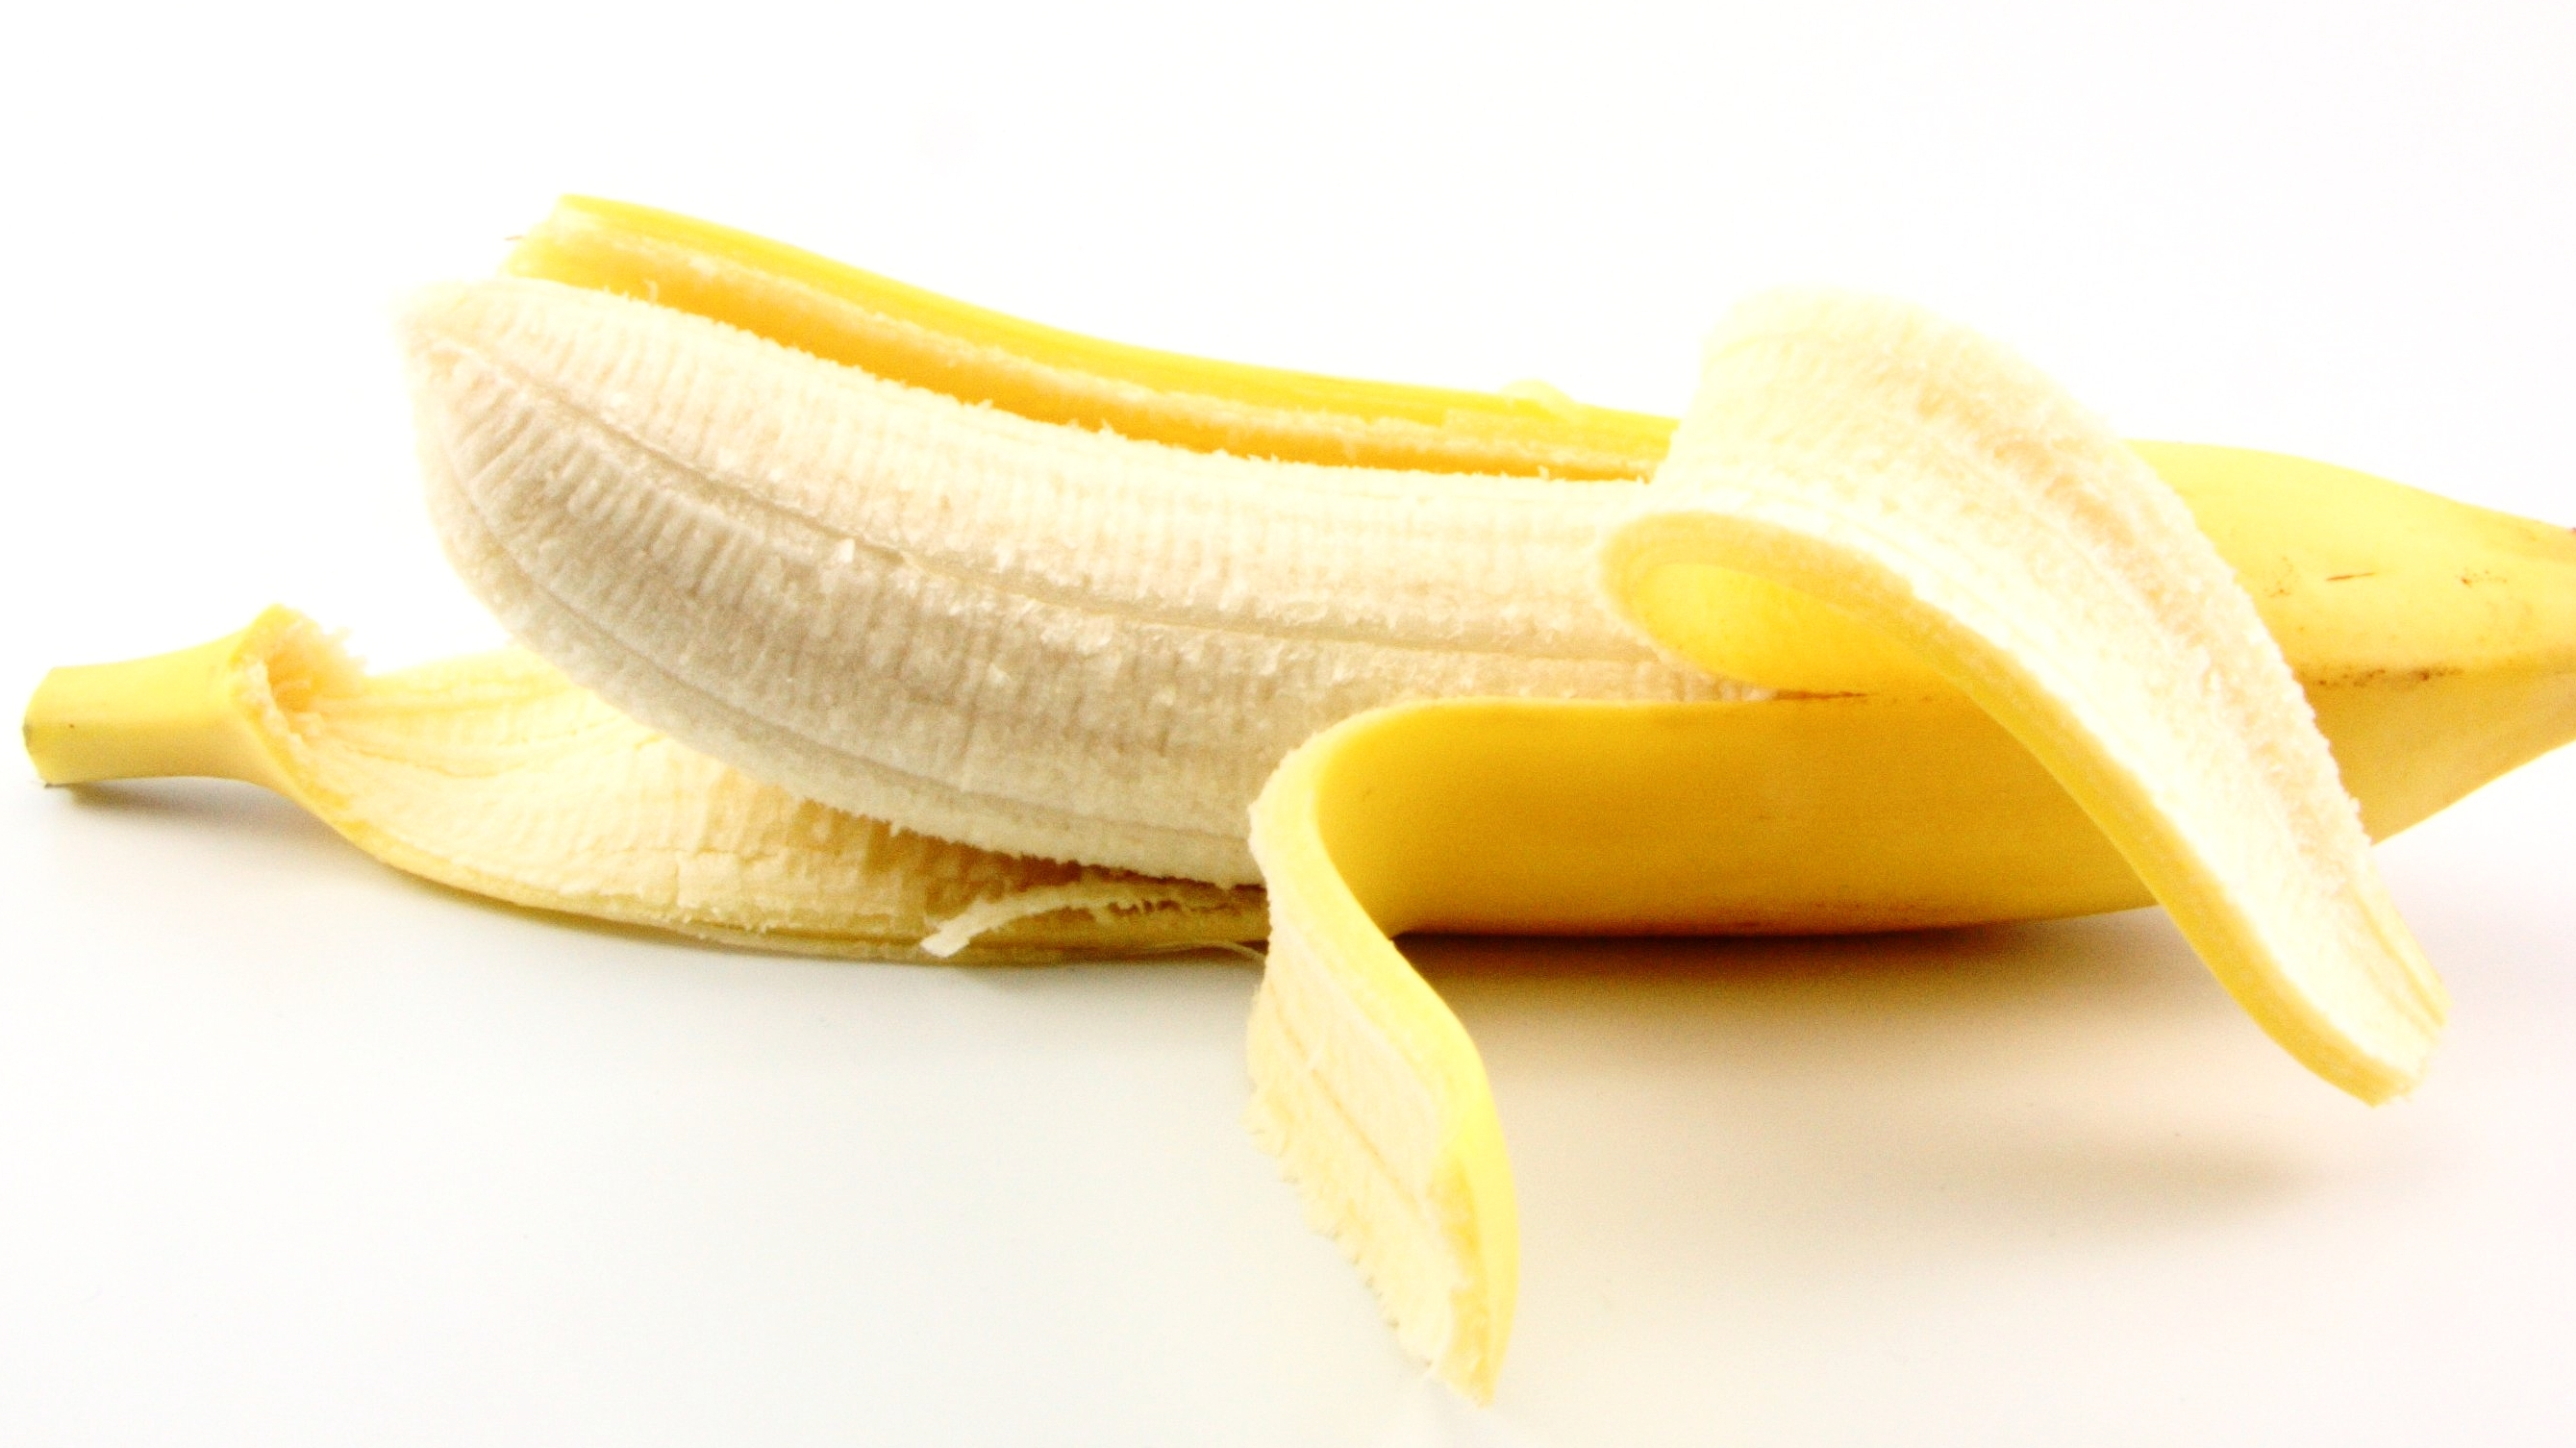 Banana definition, a tropical plant of the genus Musa, certain species of which are cultivated for their nutritious fruit. See more.